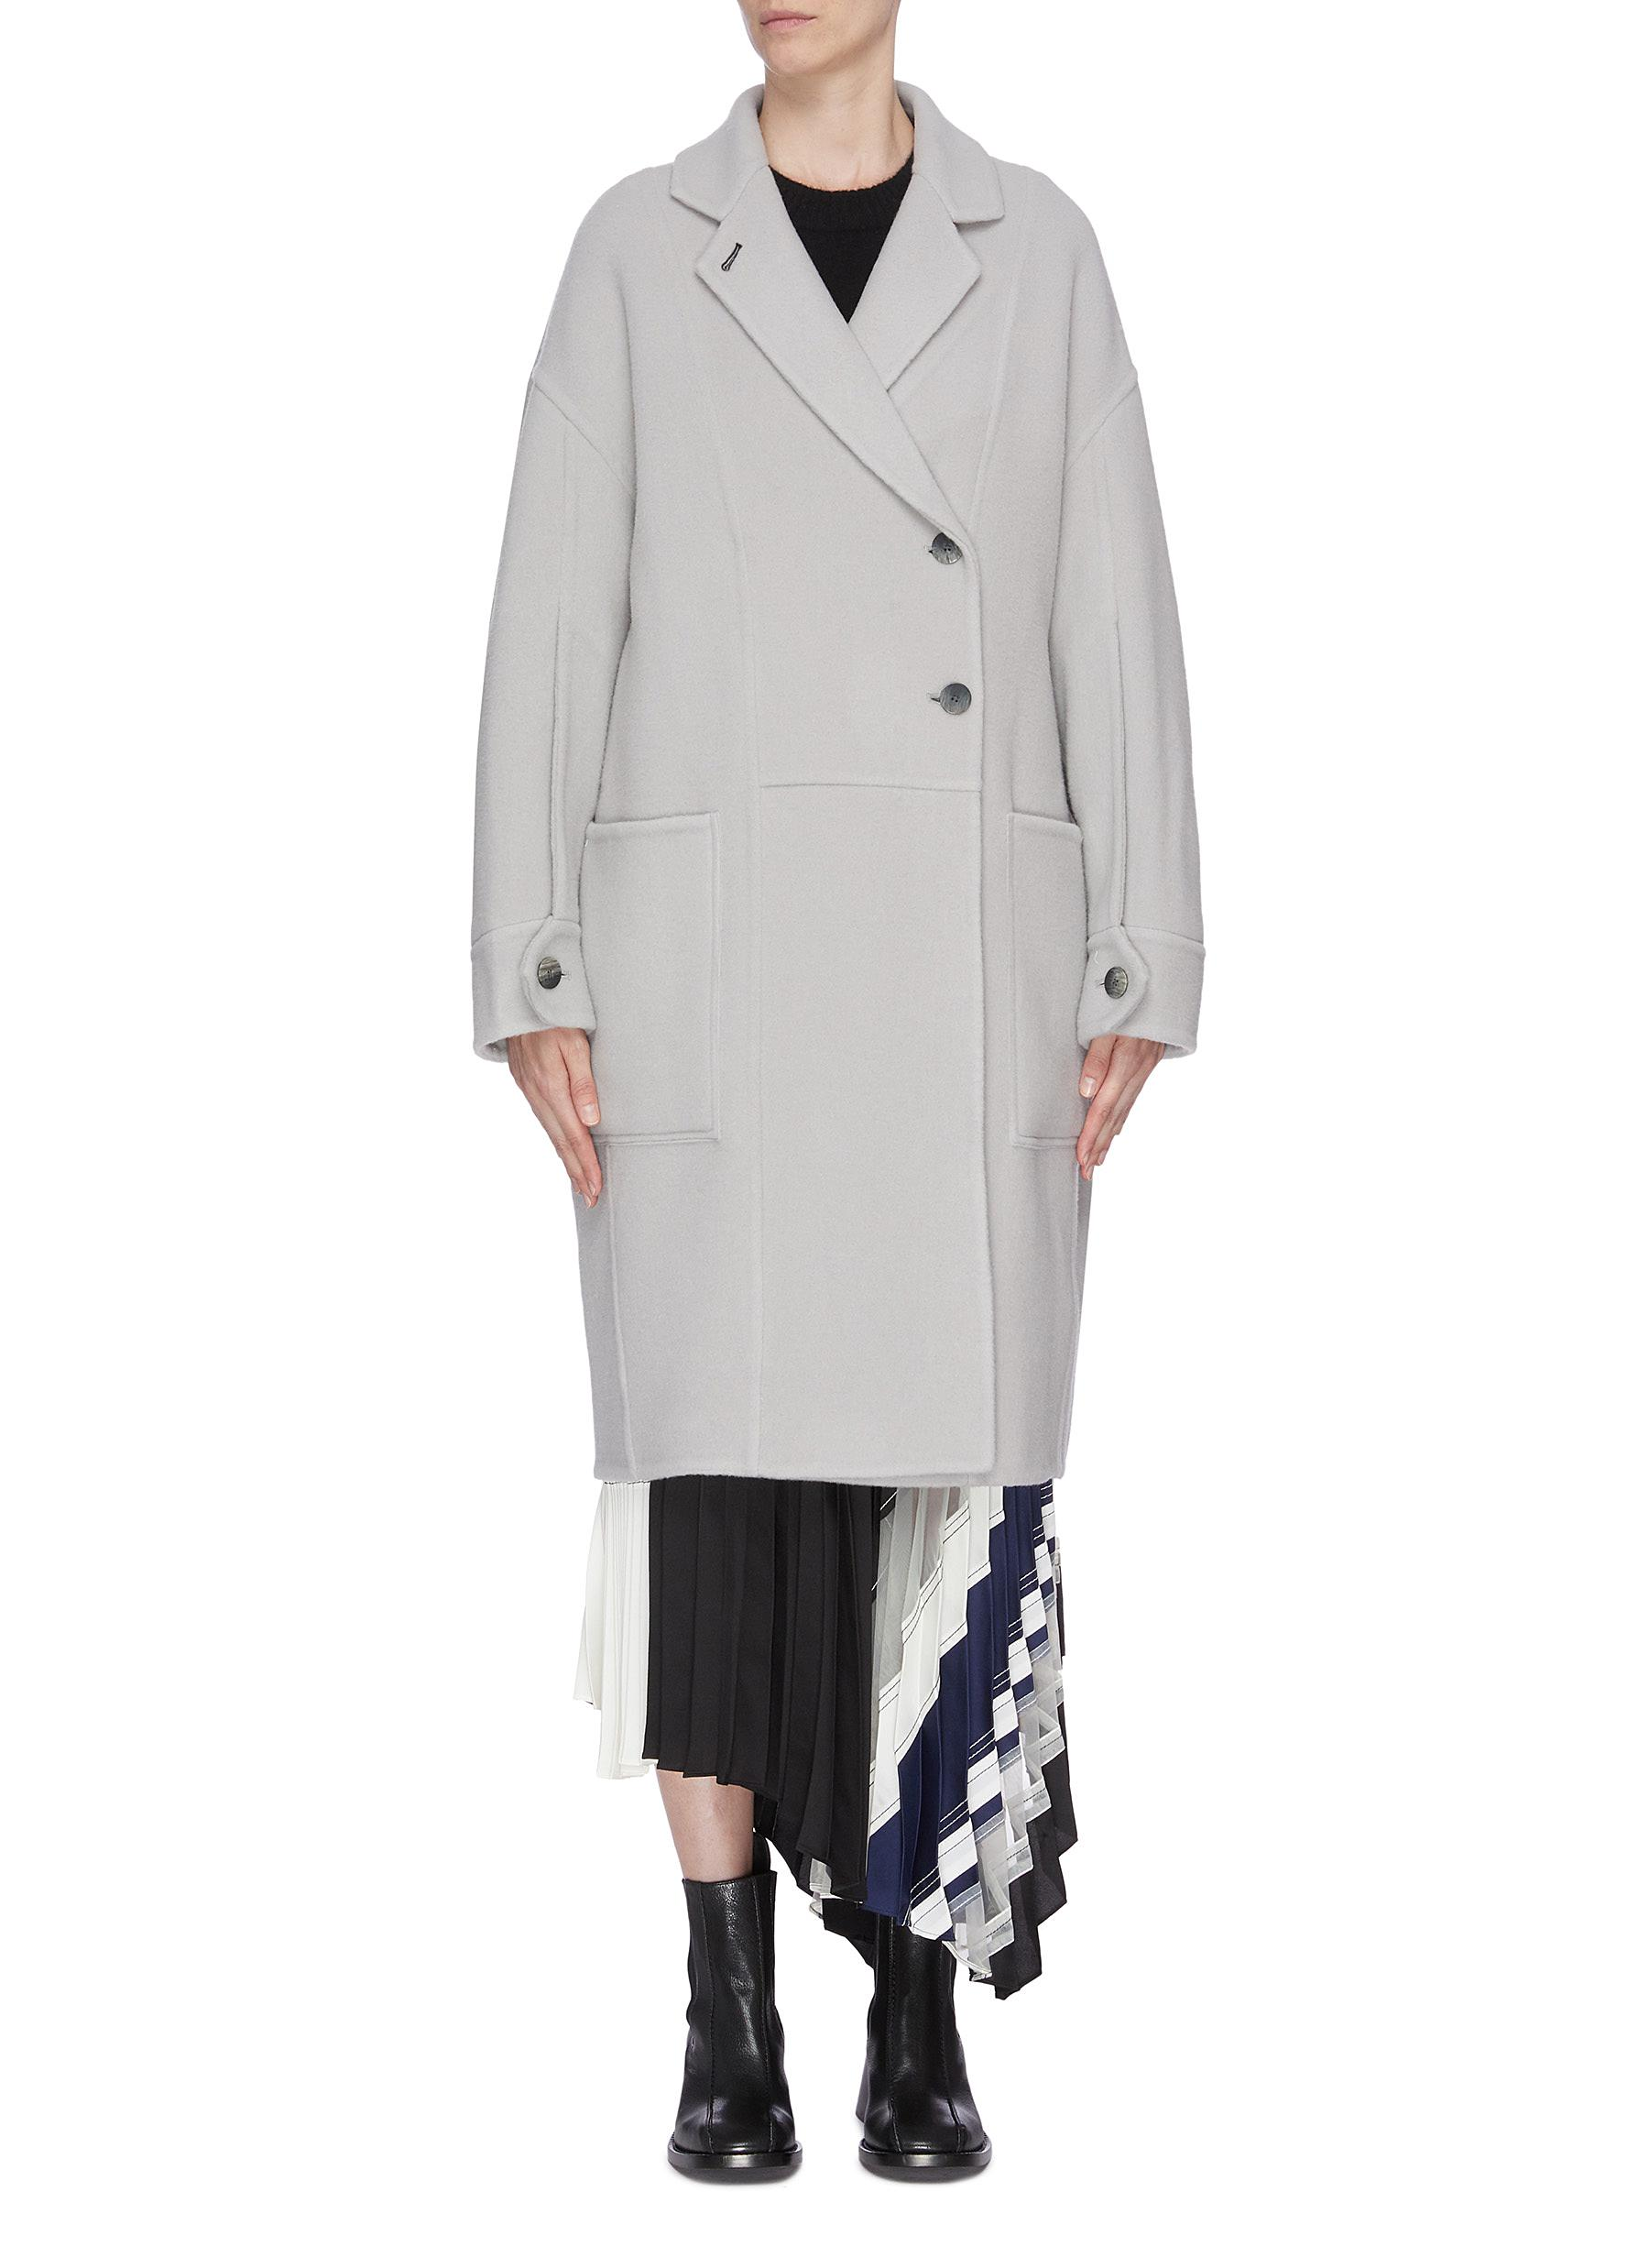 Oversized coat with decorative seams by 3.1 Phillip Lim